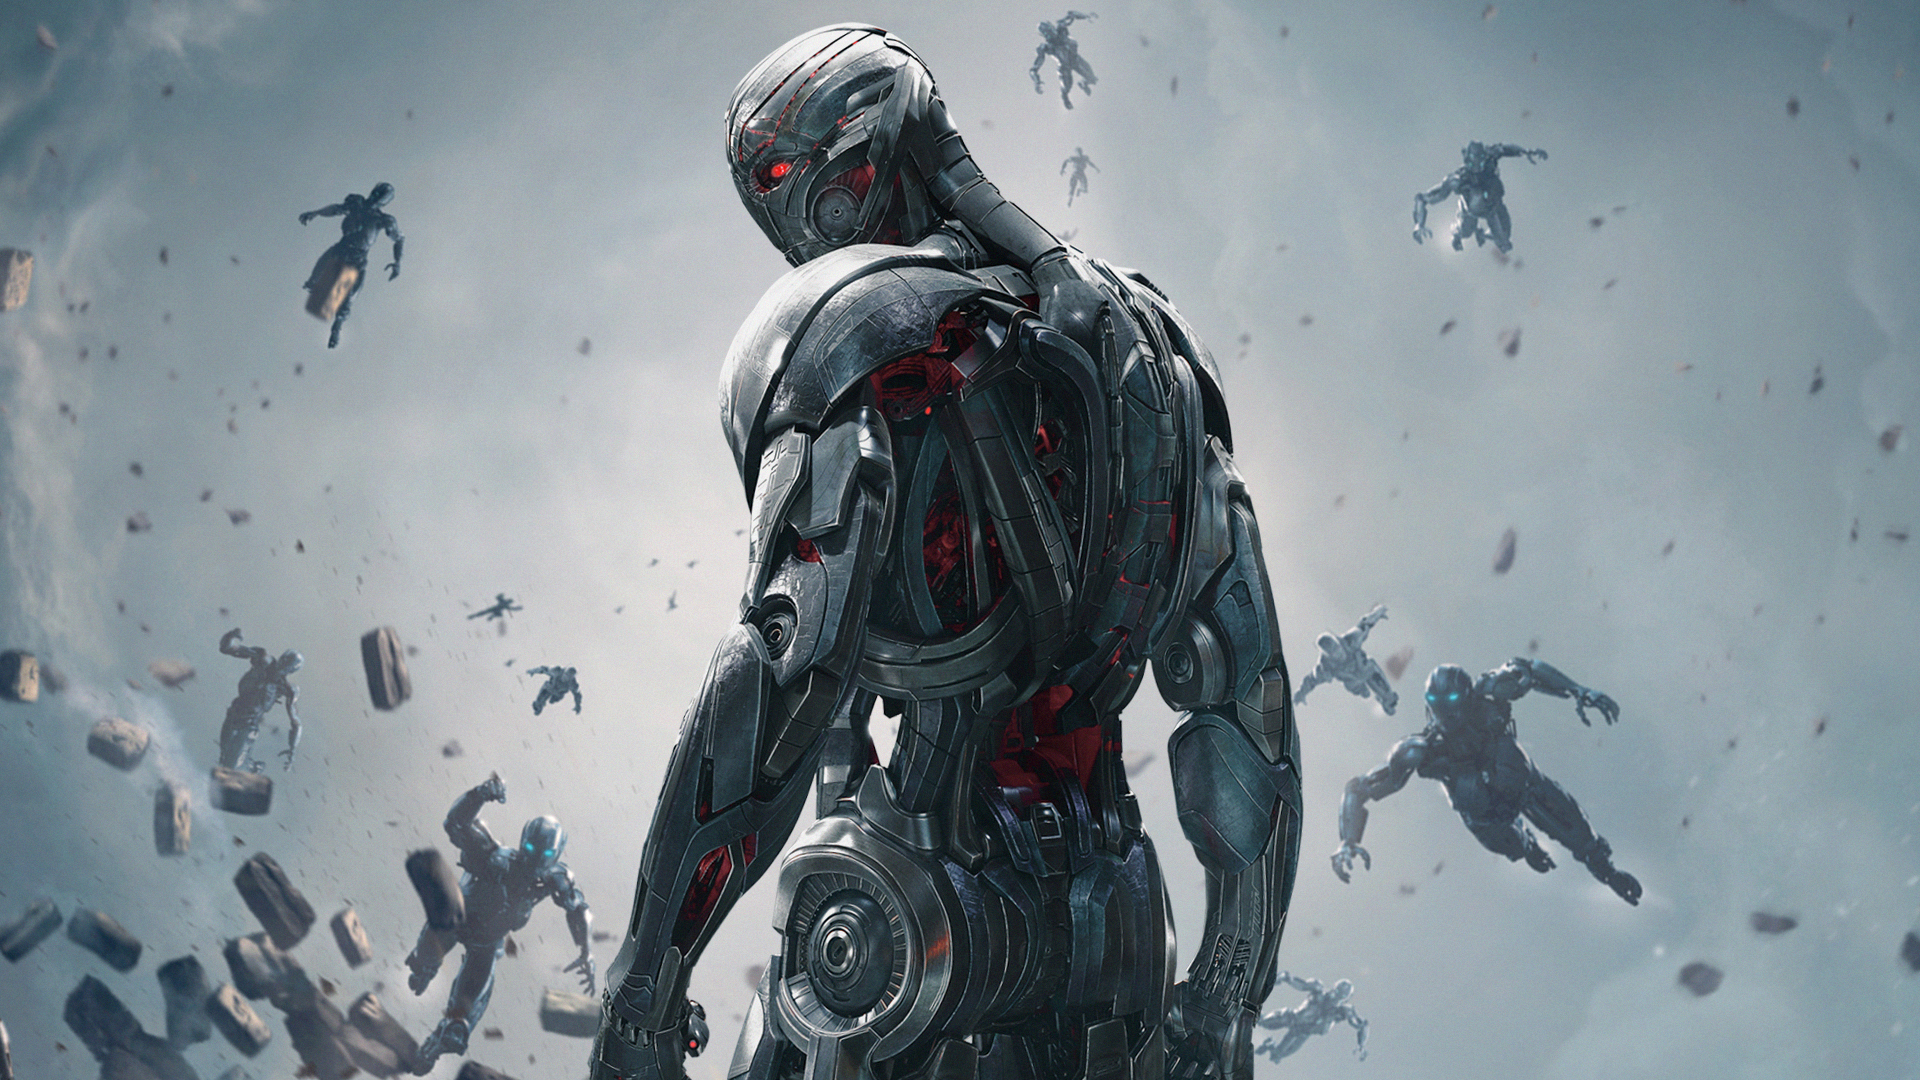 Avengers Age Of Ultron Wallpaper 1920x1080 by sachso74 1920x1080